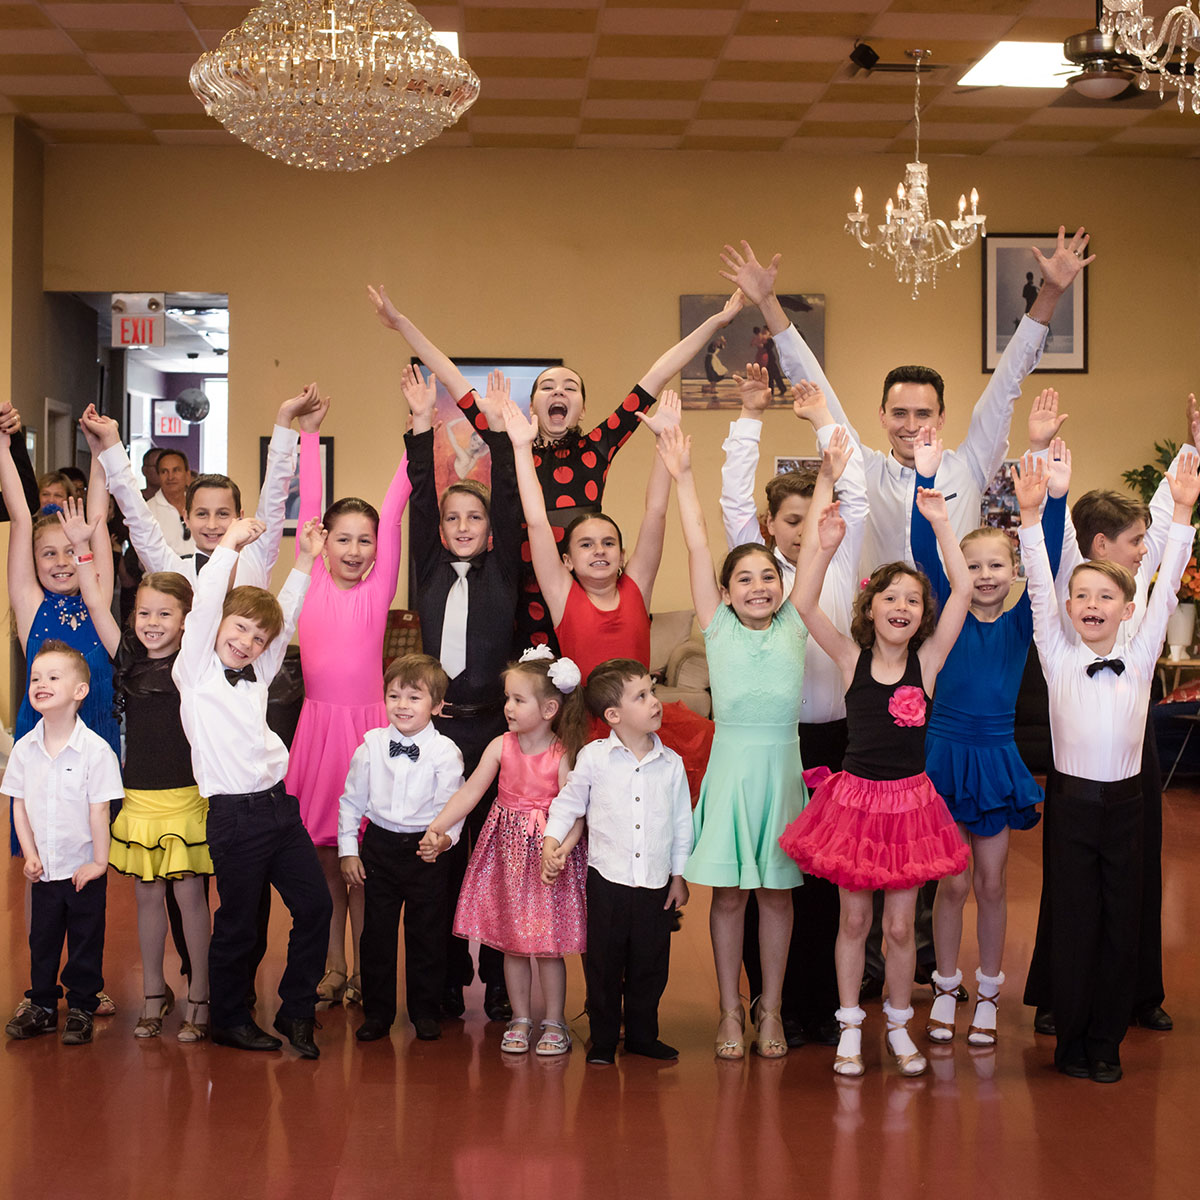 dance-vitality-children-youth-dance-lessons